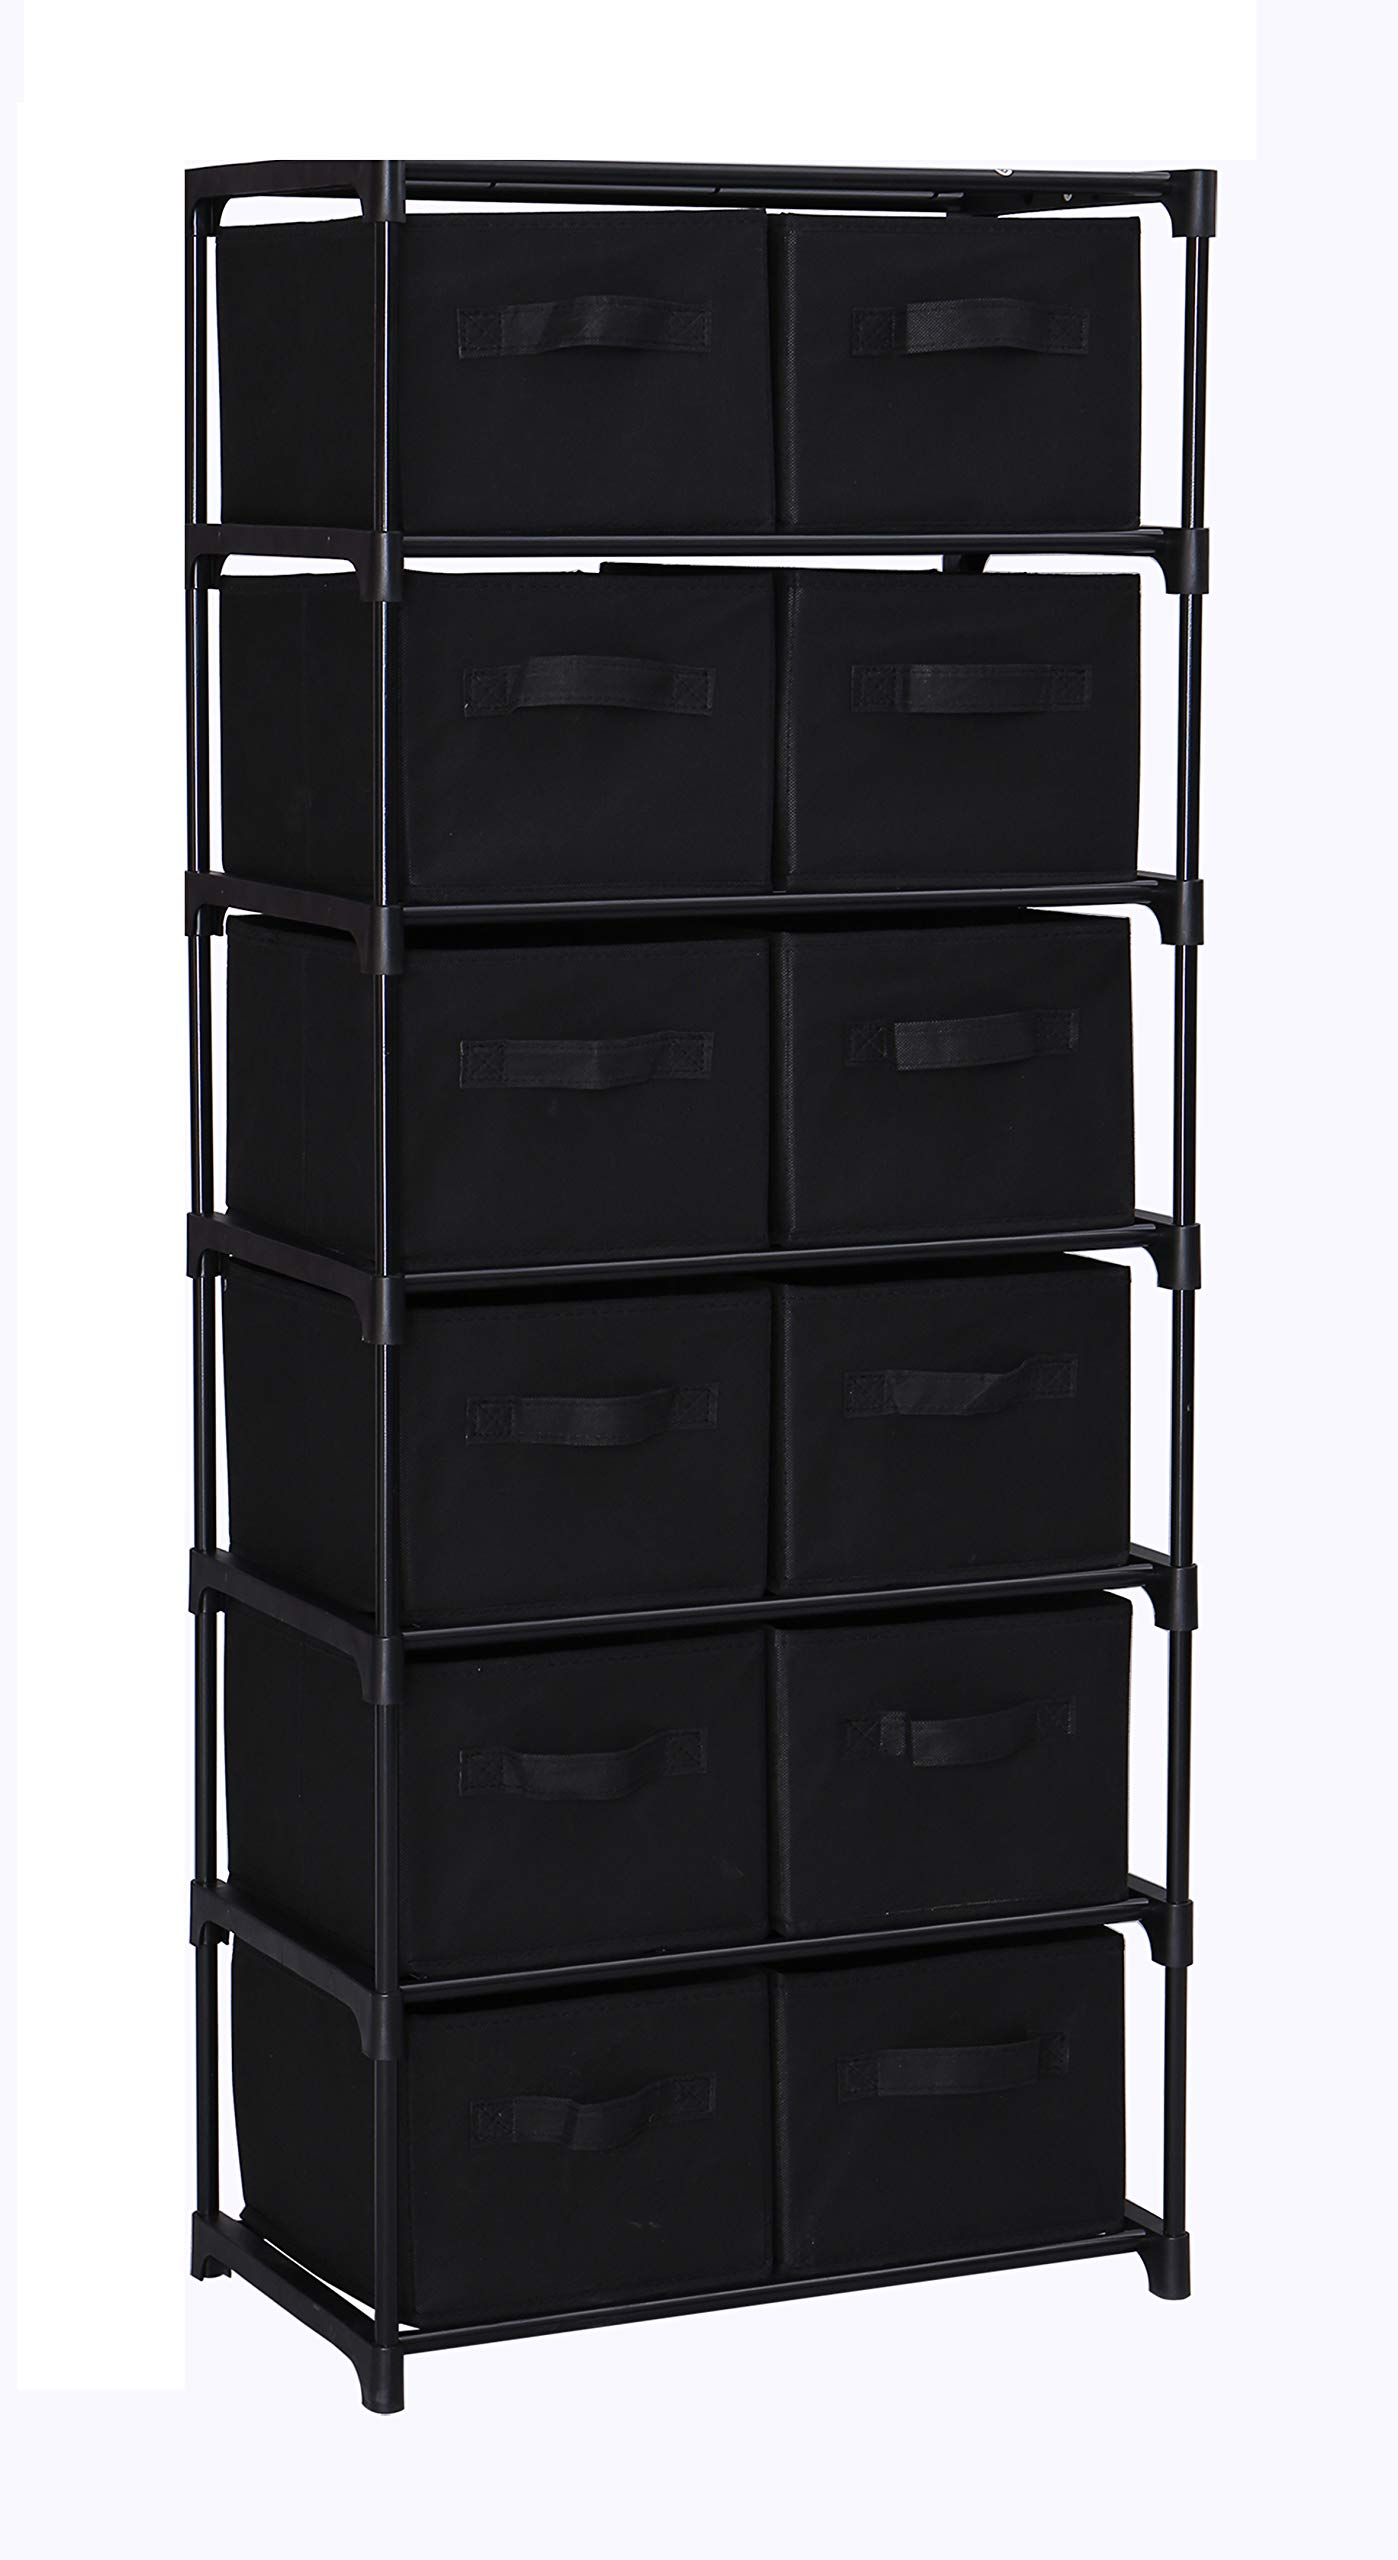 Home-Like 12-Drawer Chest Fabric Dresser Chest of Drawers 6 Tier Storage Organizer Tower Storage Unit Metal Shelf with 12 Removable Fabric Bins Ideal for Home Office Dorm Bedroom Nursery (Black)